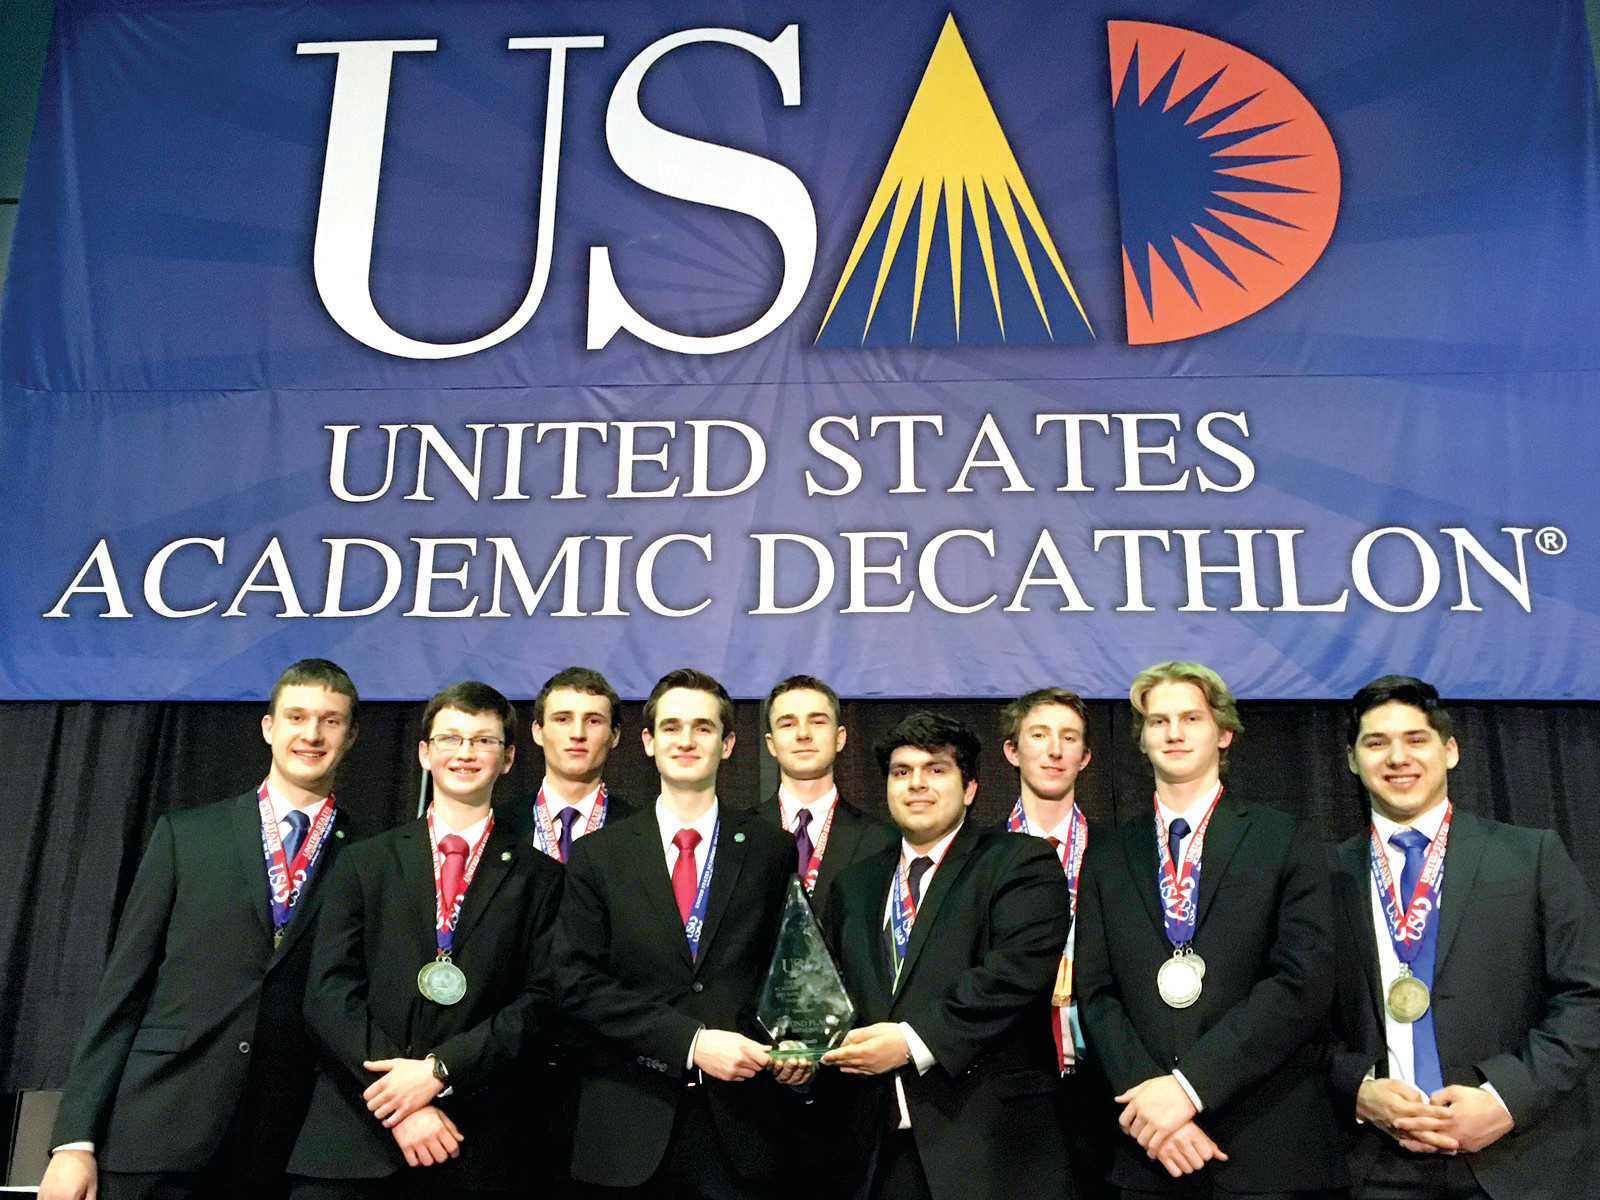 STRONG FINISH: The Hawks placed second out of 16 teams in their division at the national Academic Decathlon competition, marking the first time a Rhode Island team has placed at the national level.